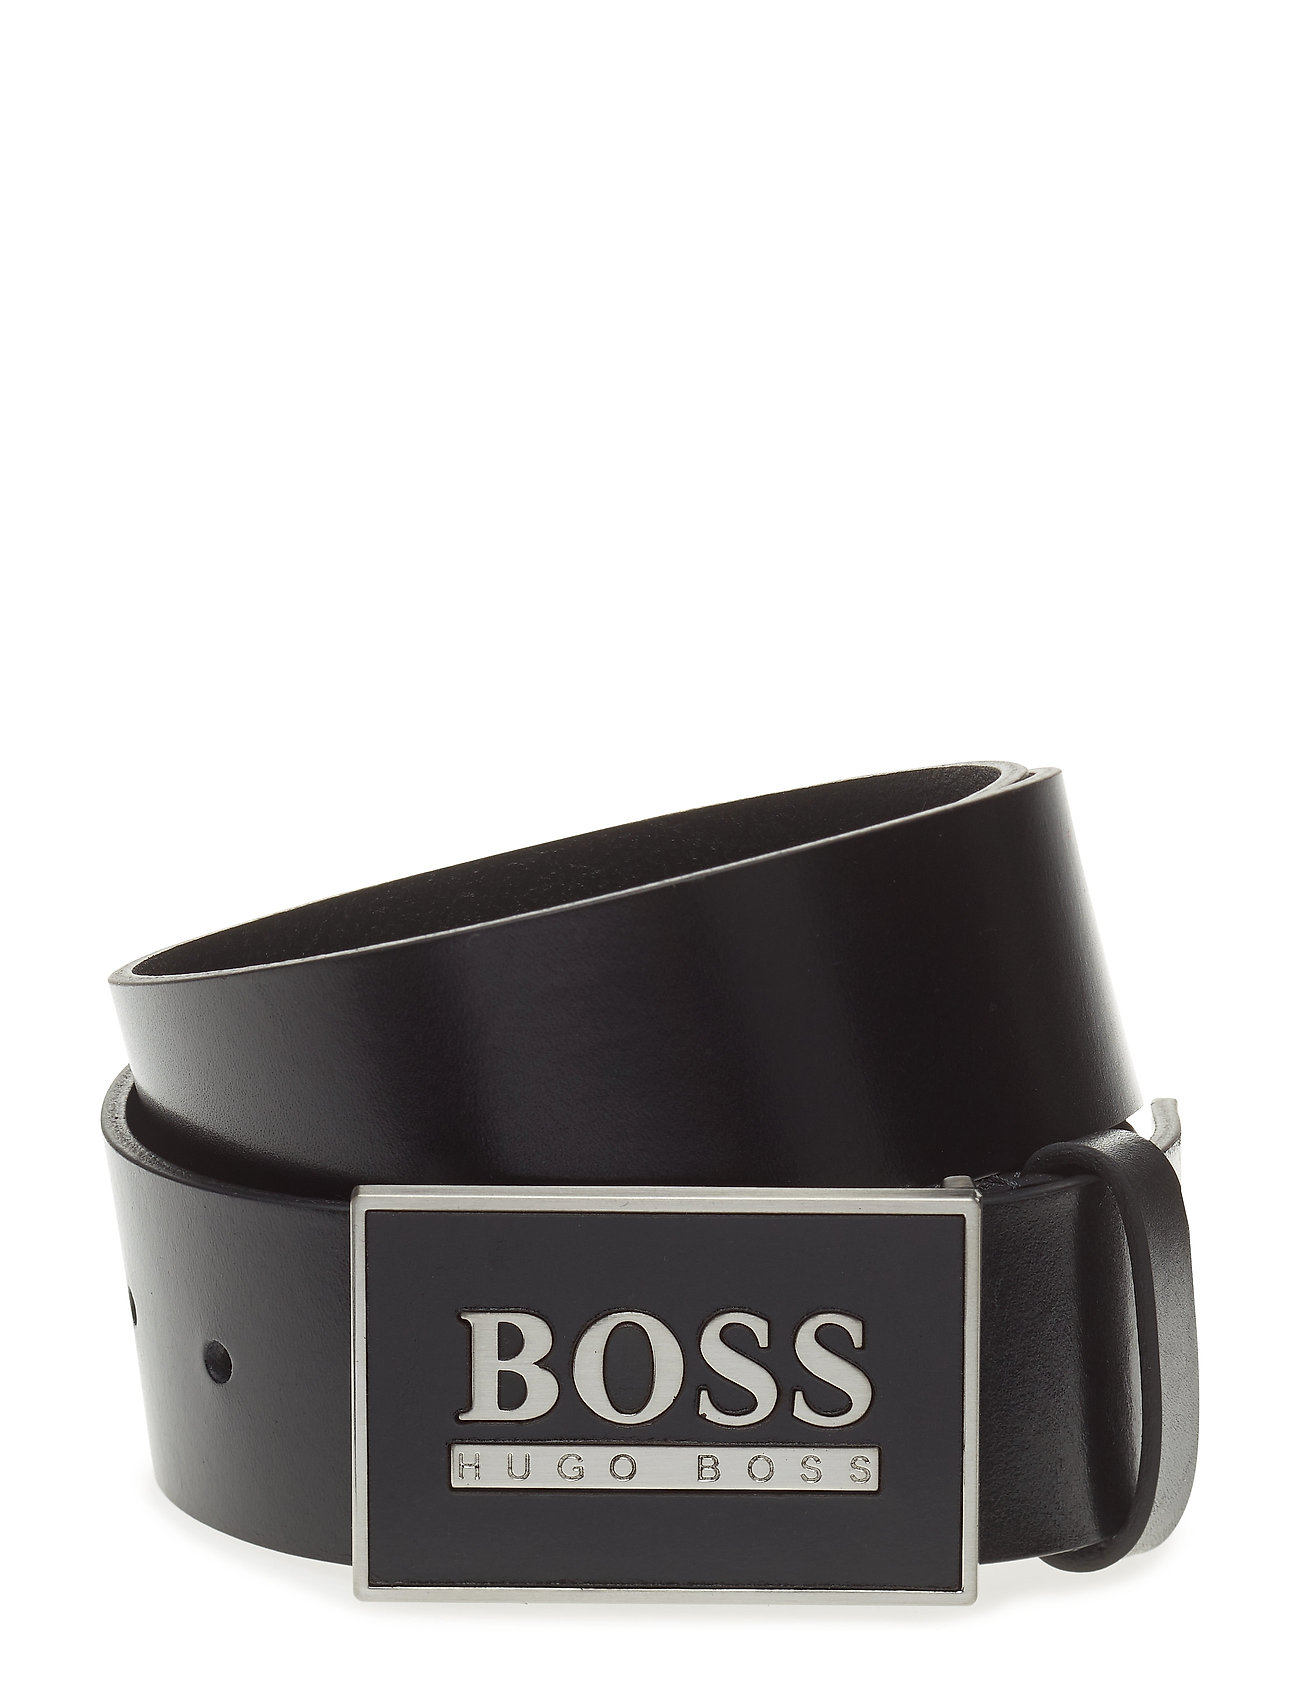 Boss_icon_sz40 - Boss Athleisure Wear